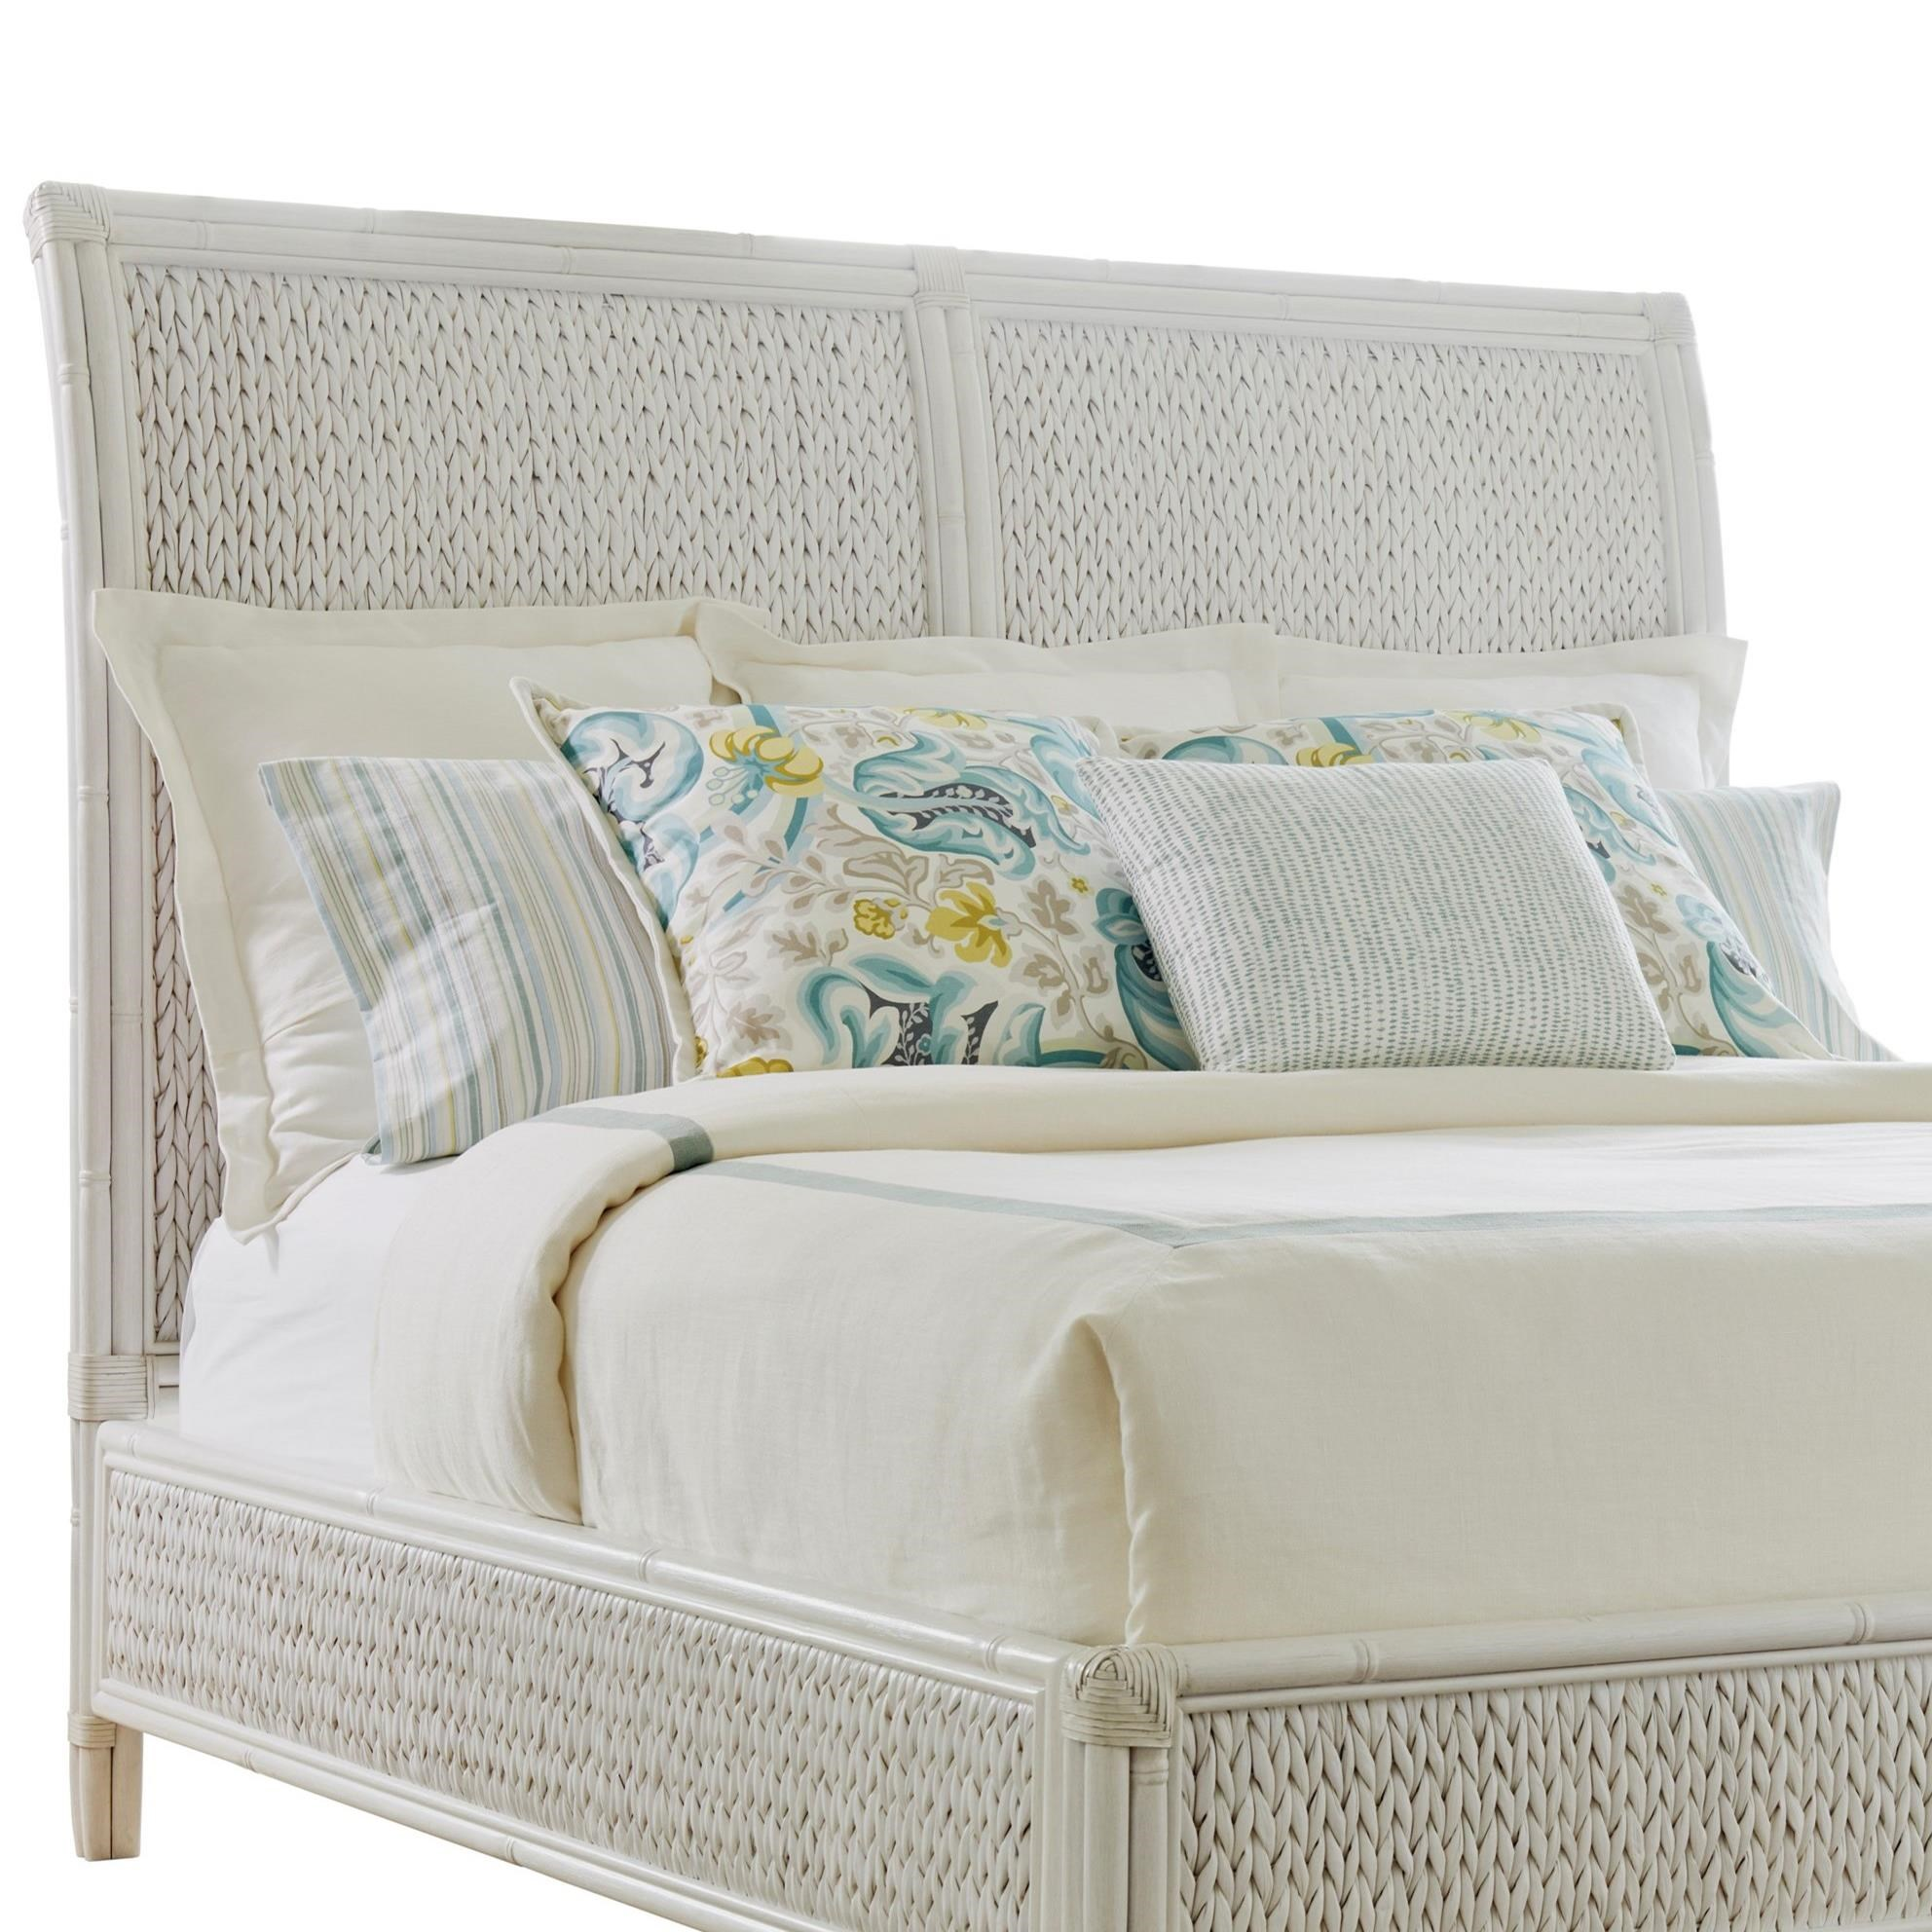 Ocean Breeze Siesta Key Woven Headboard Queen by Tommy Bahama Home at Baer's Furniture